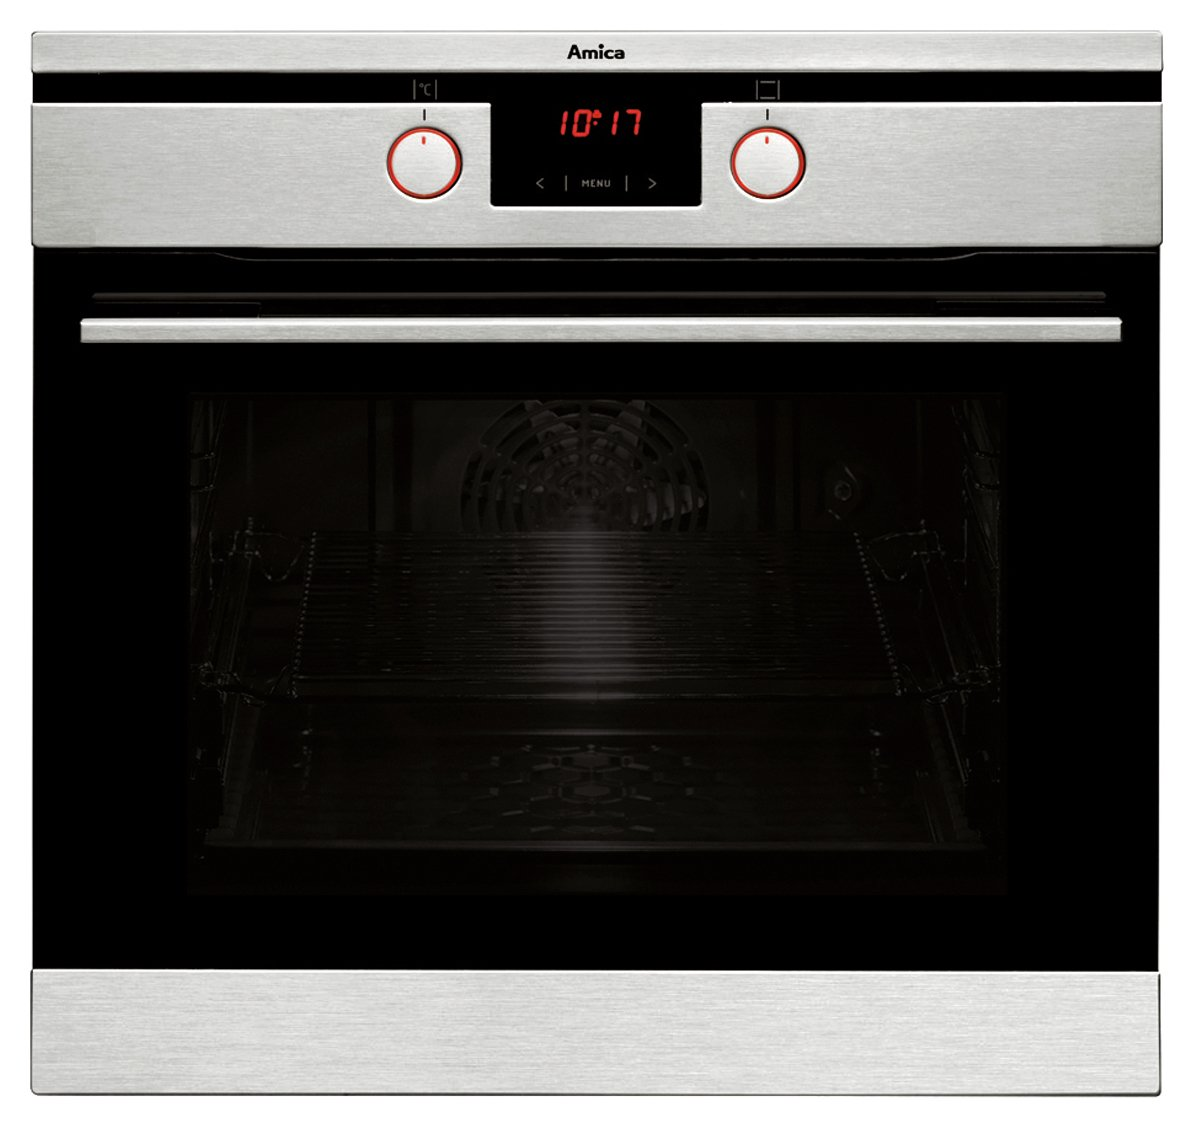 Image of Amica 11433TSX Built-In Oven - Stainless Steel.